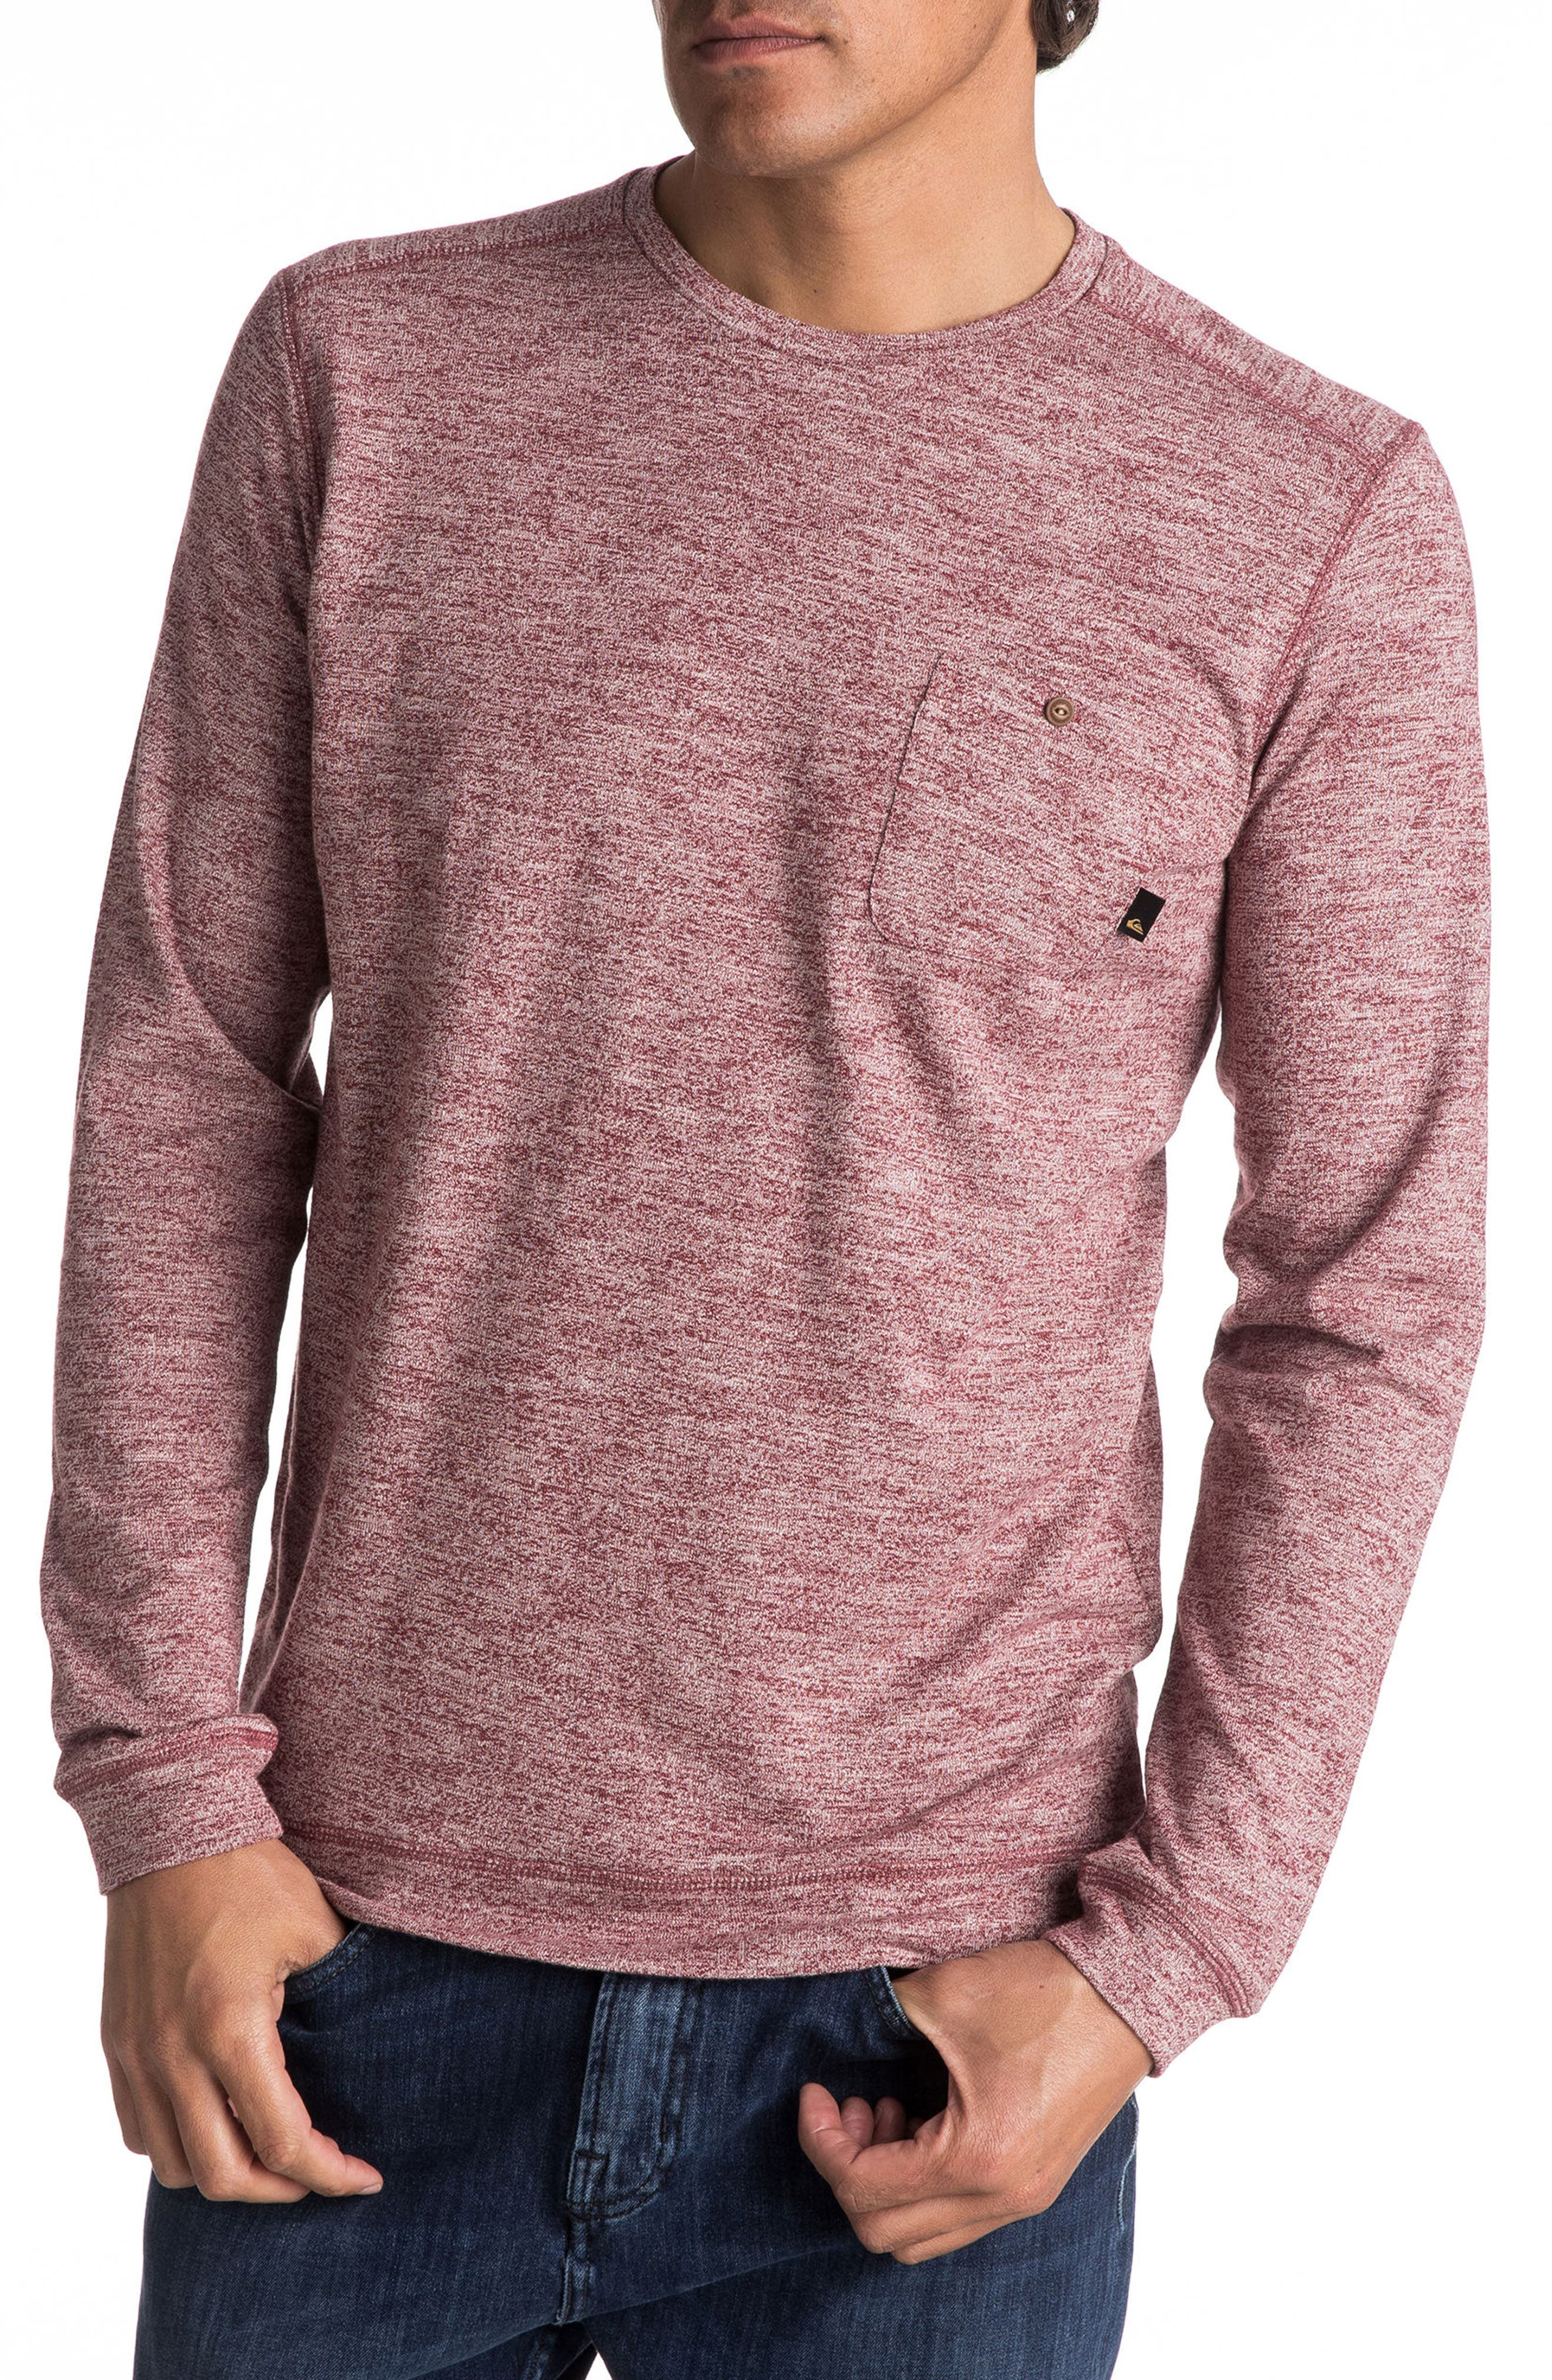 Lindow Marled Sweater,                             Main thumbnail 1, color,                             Pomegranate Heather